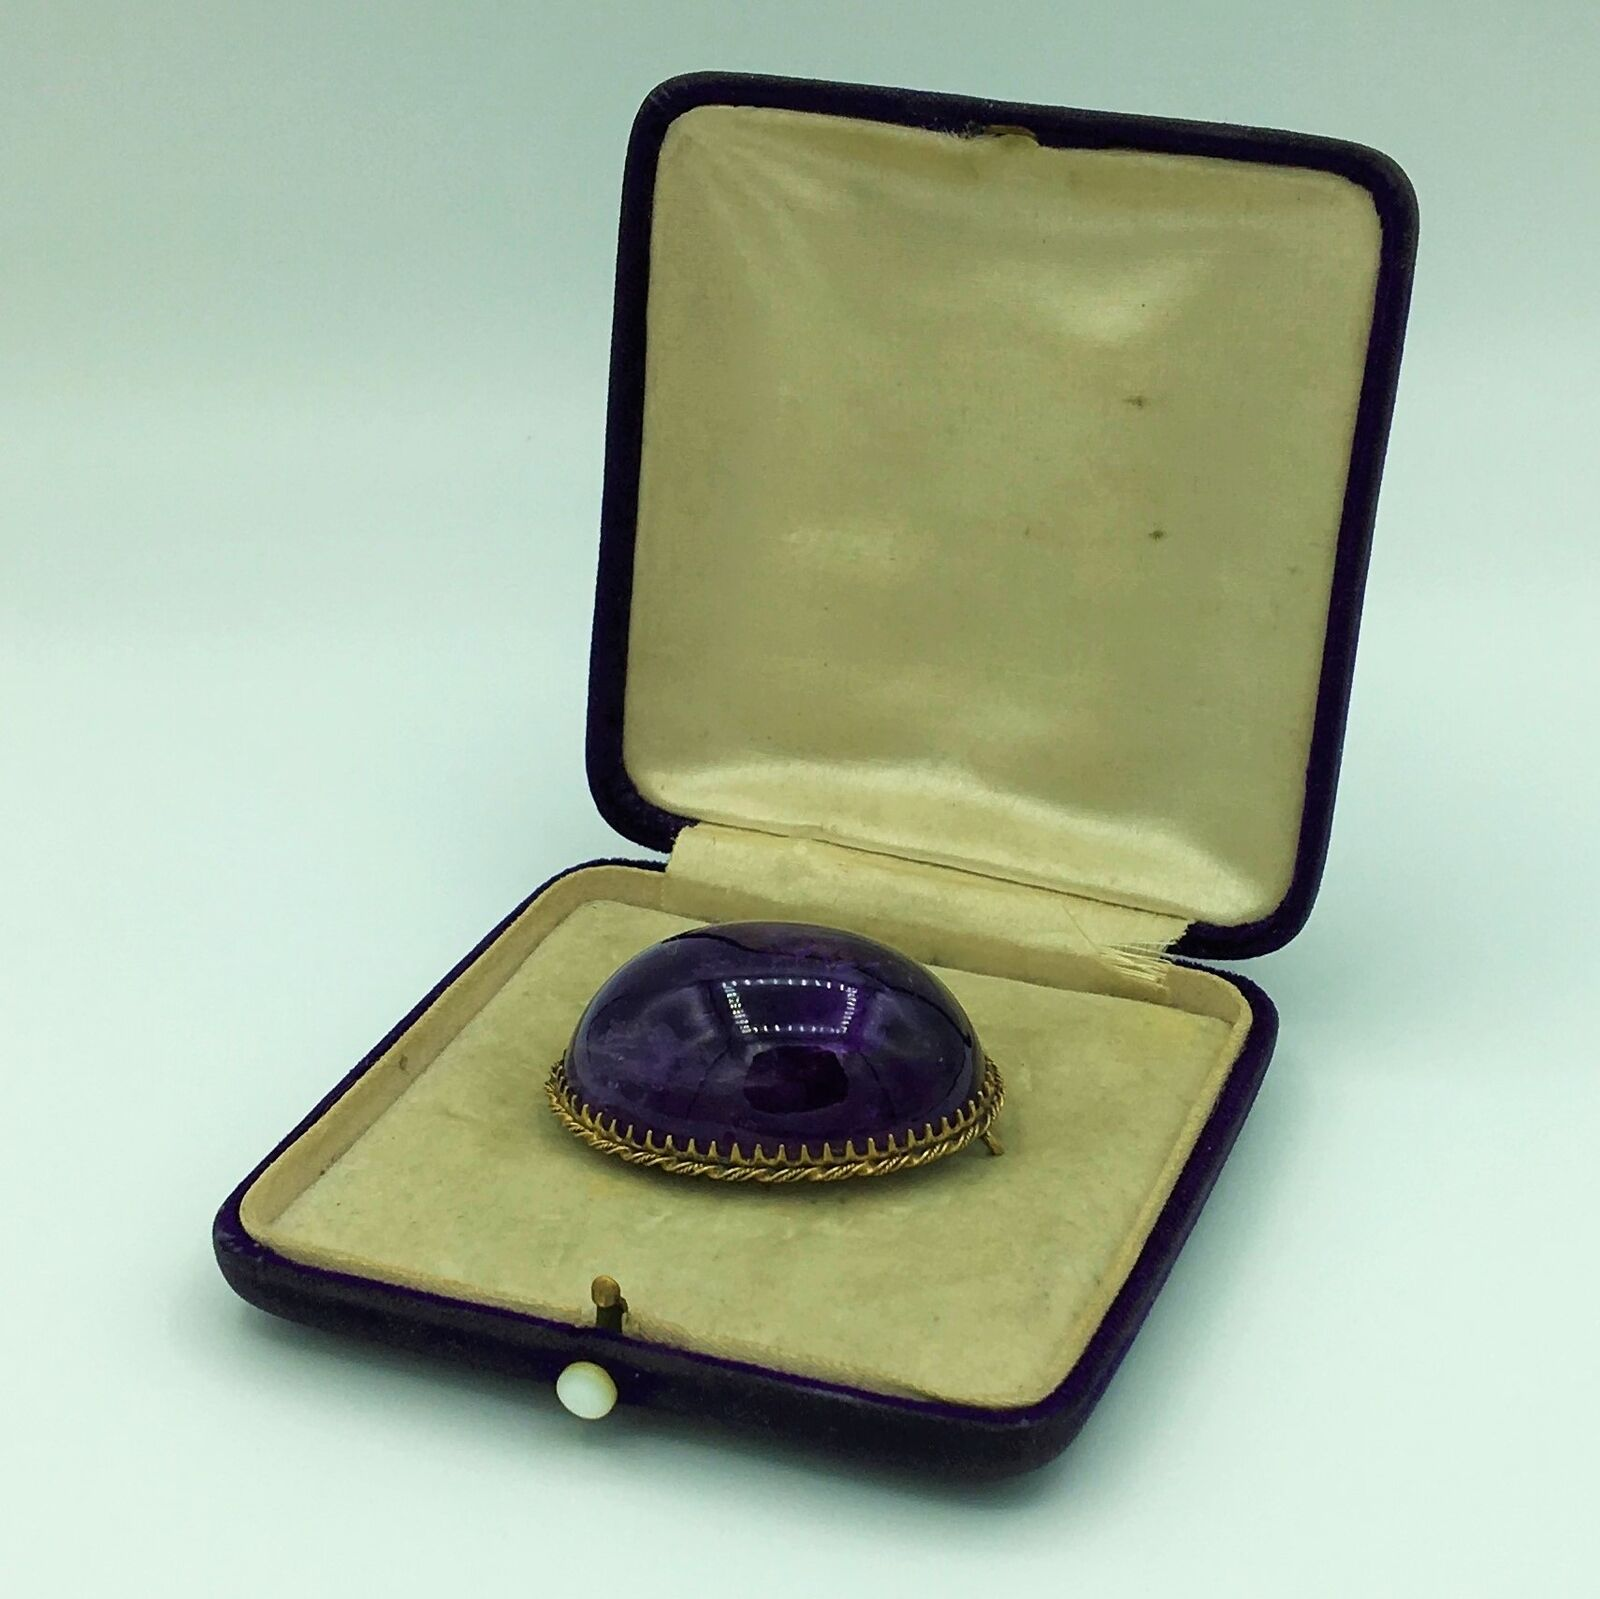 Faberge Czarist Period 14K Yellow gold with 150 Carat Imperial Amethyst Brooch